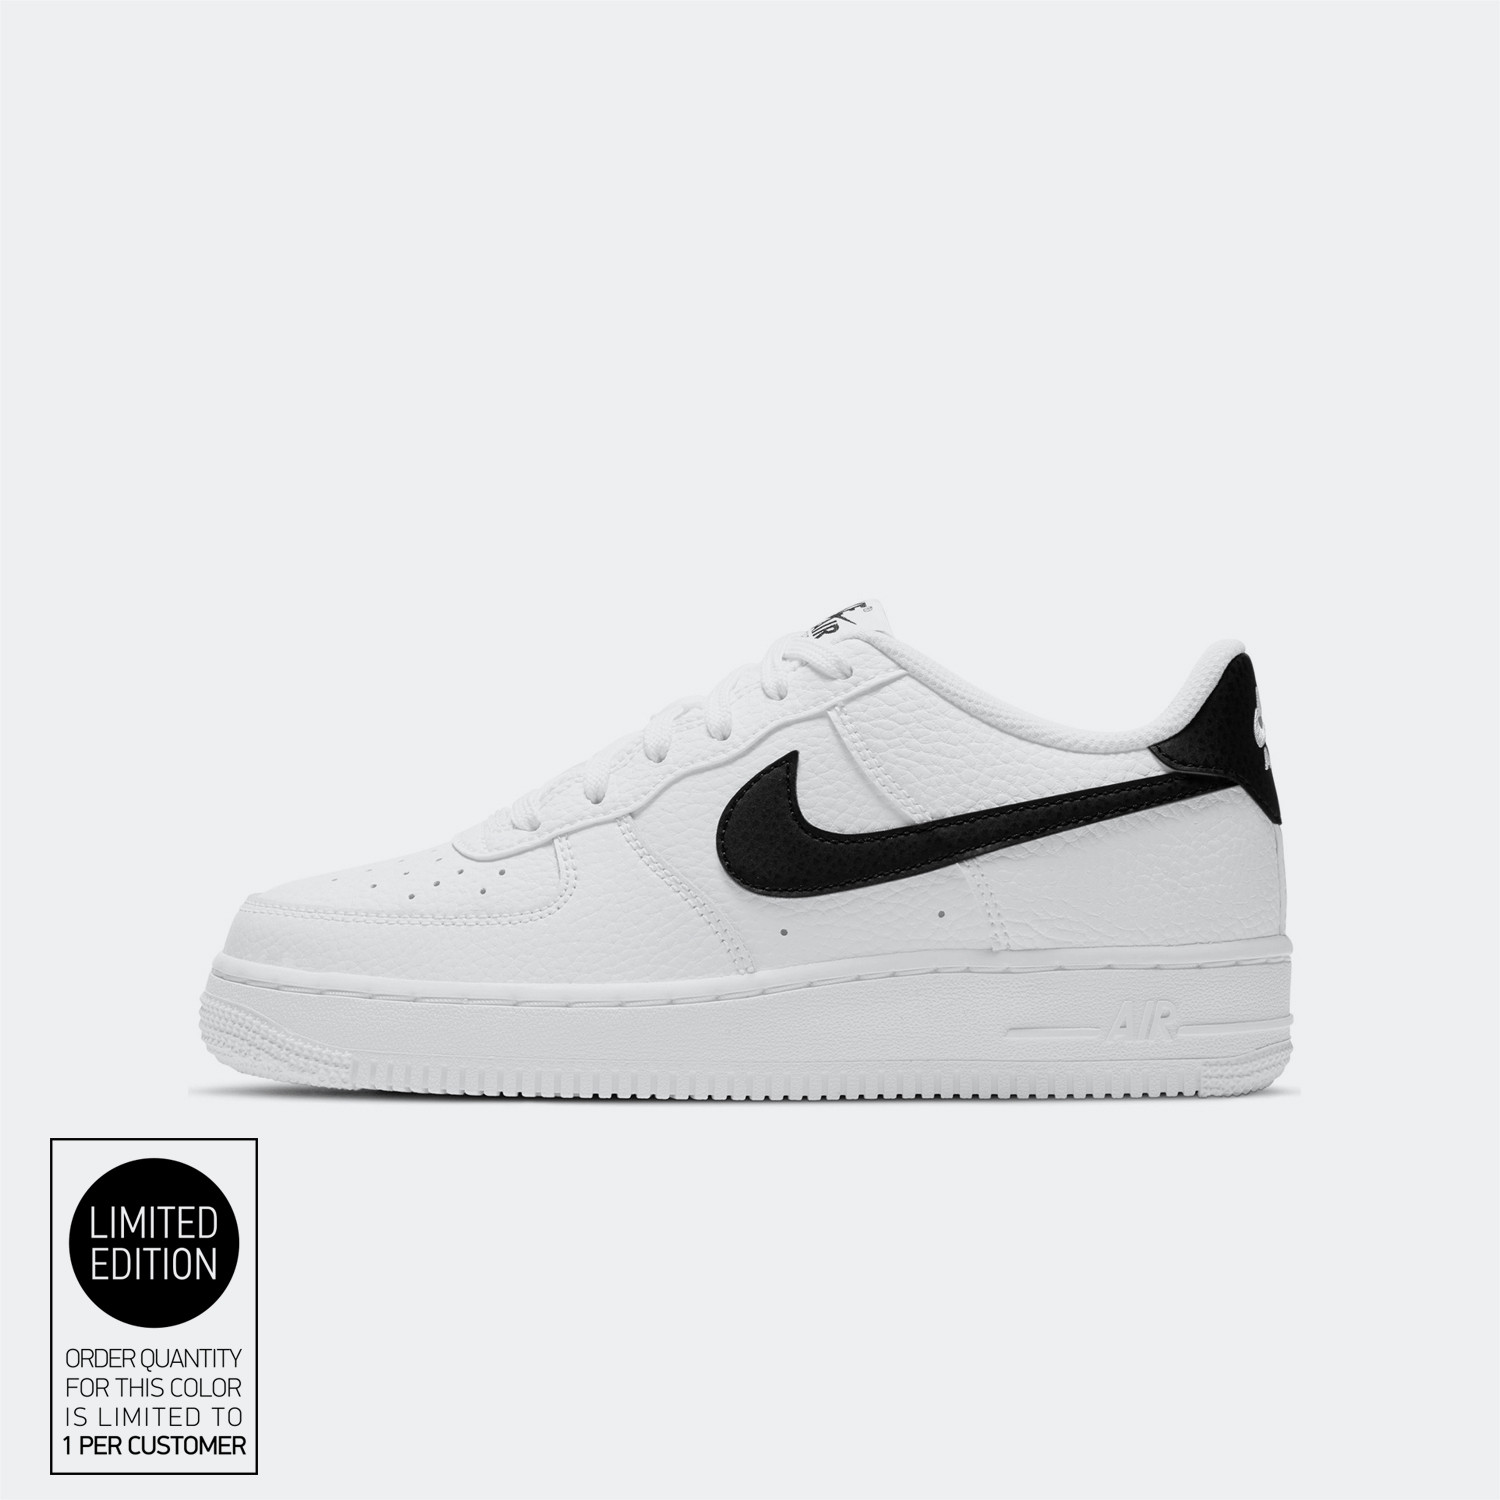 Nike Air Force 1 Παιδικά Παπούτσια (9000072178_1540)